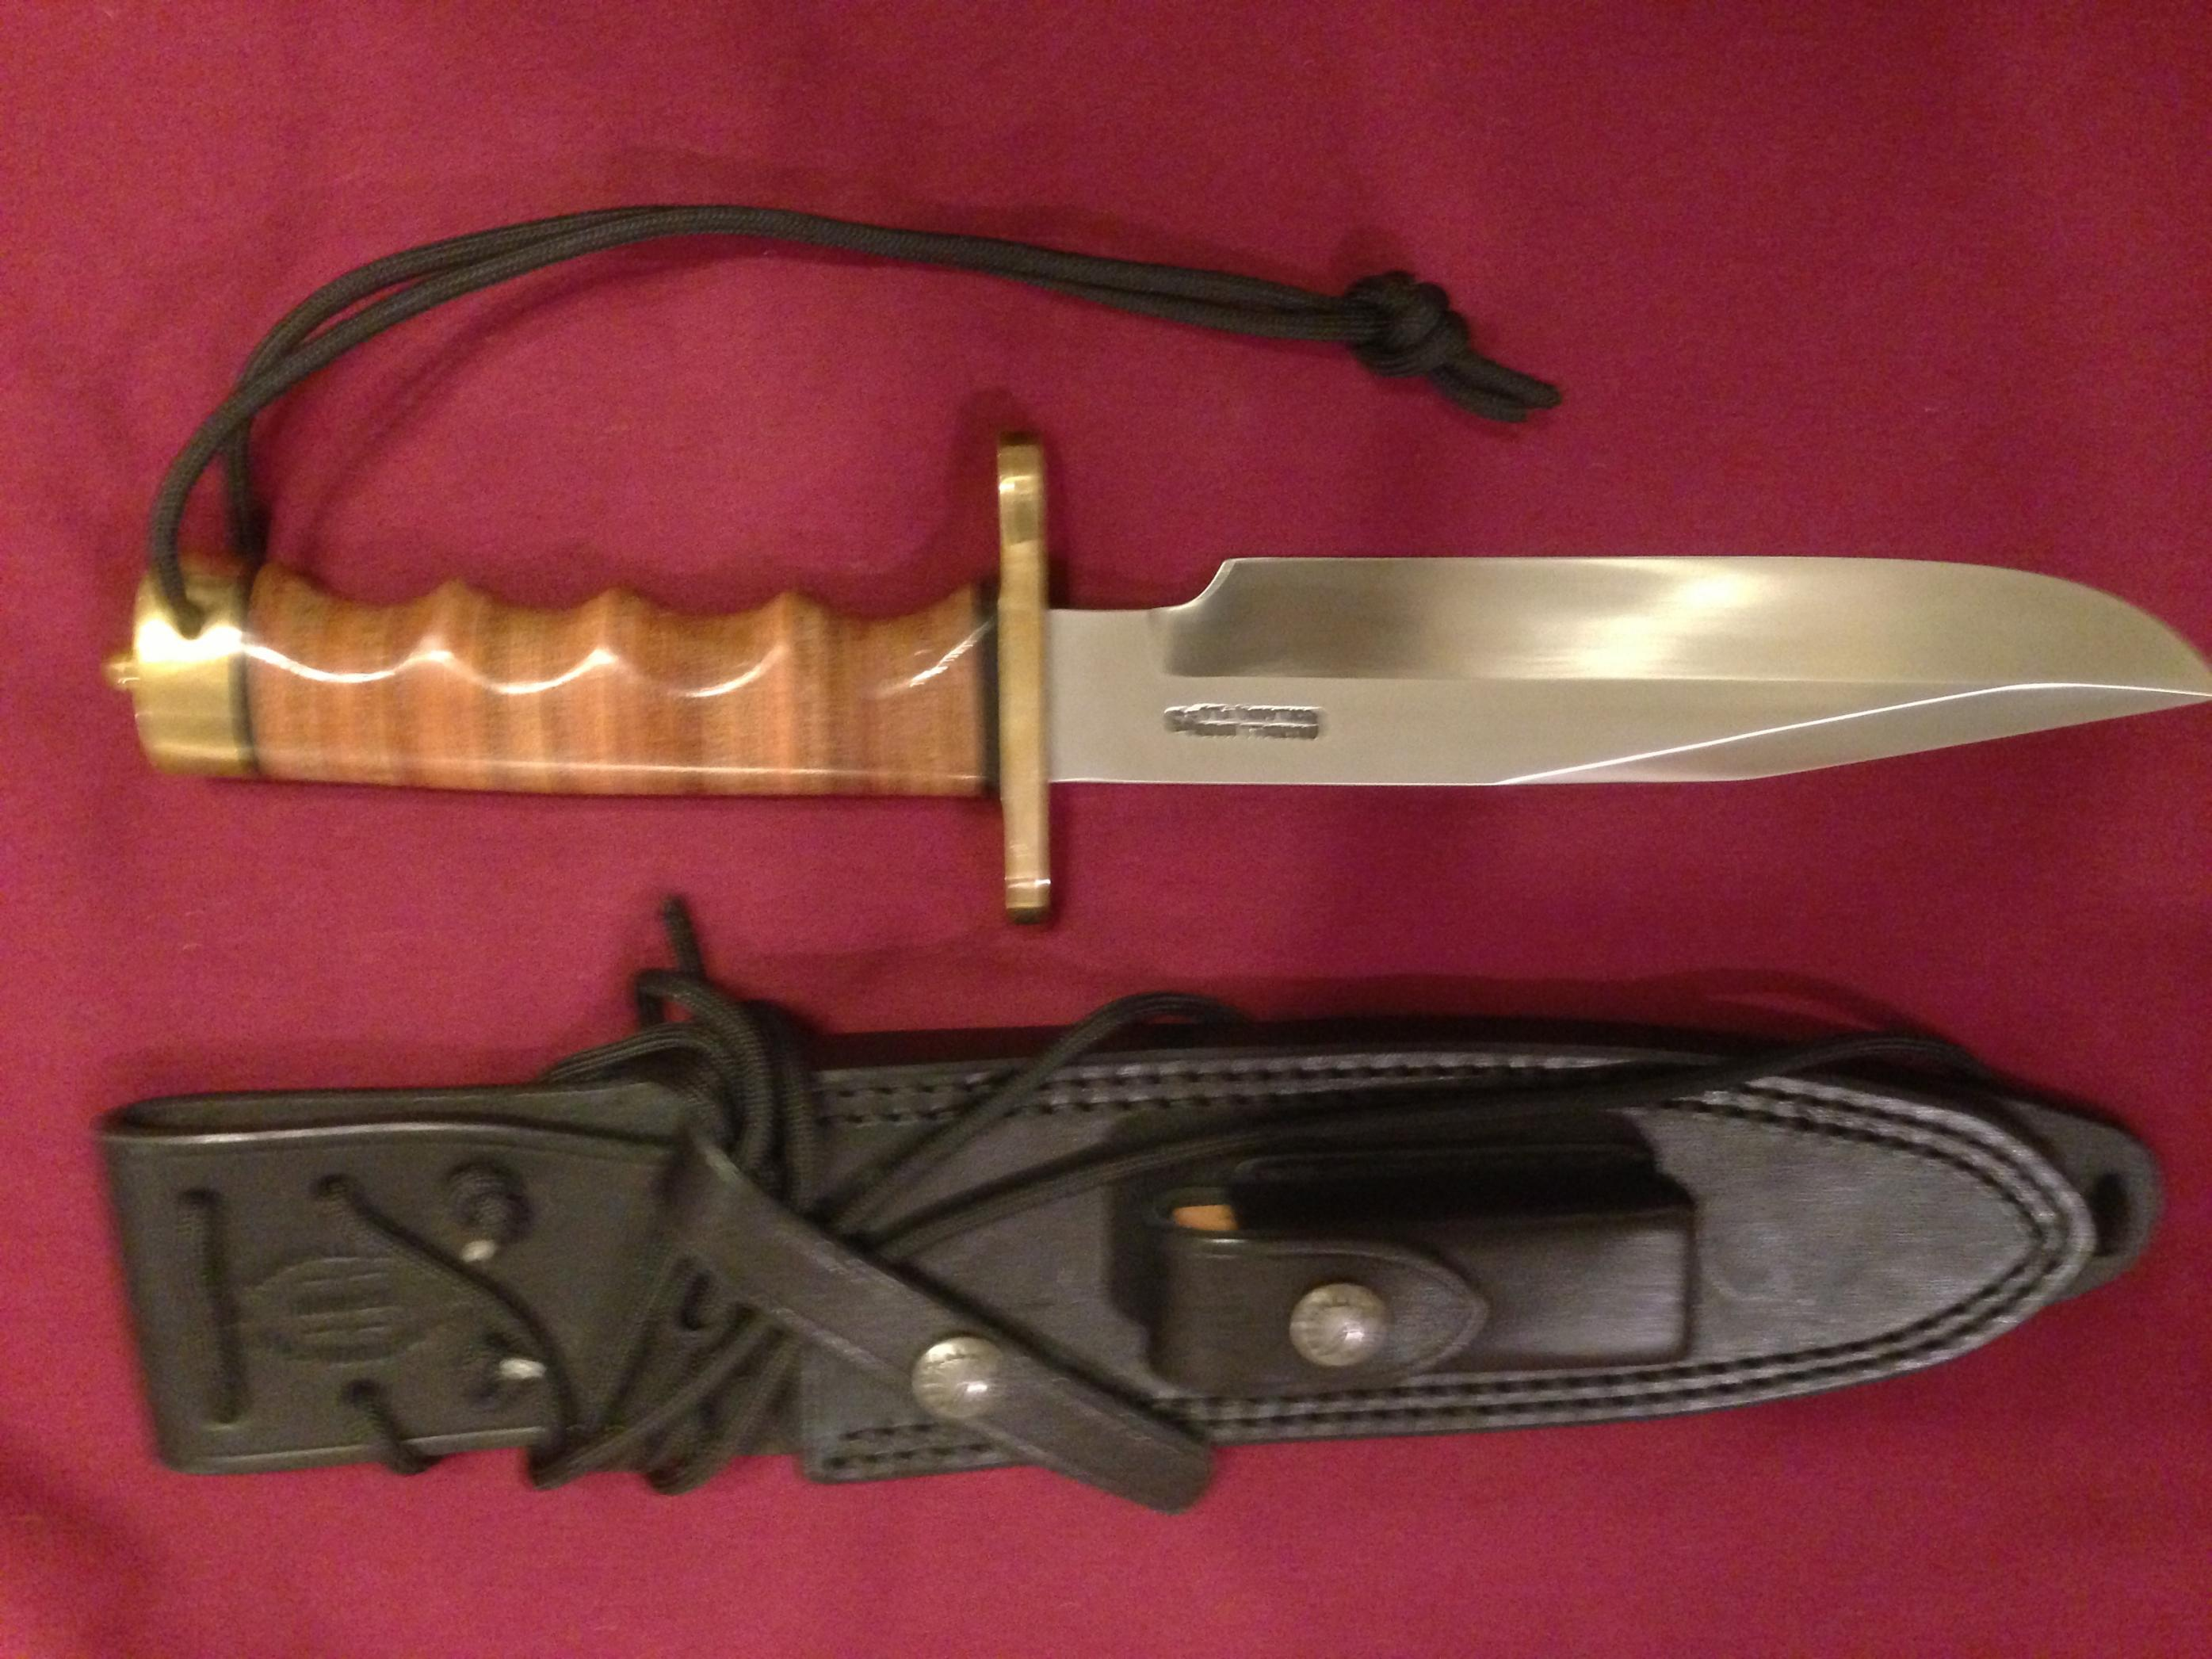 Best fighting knife-image.jpg